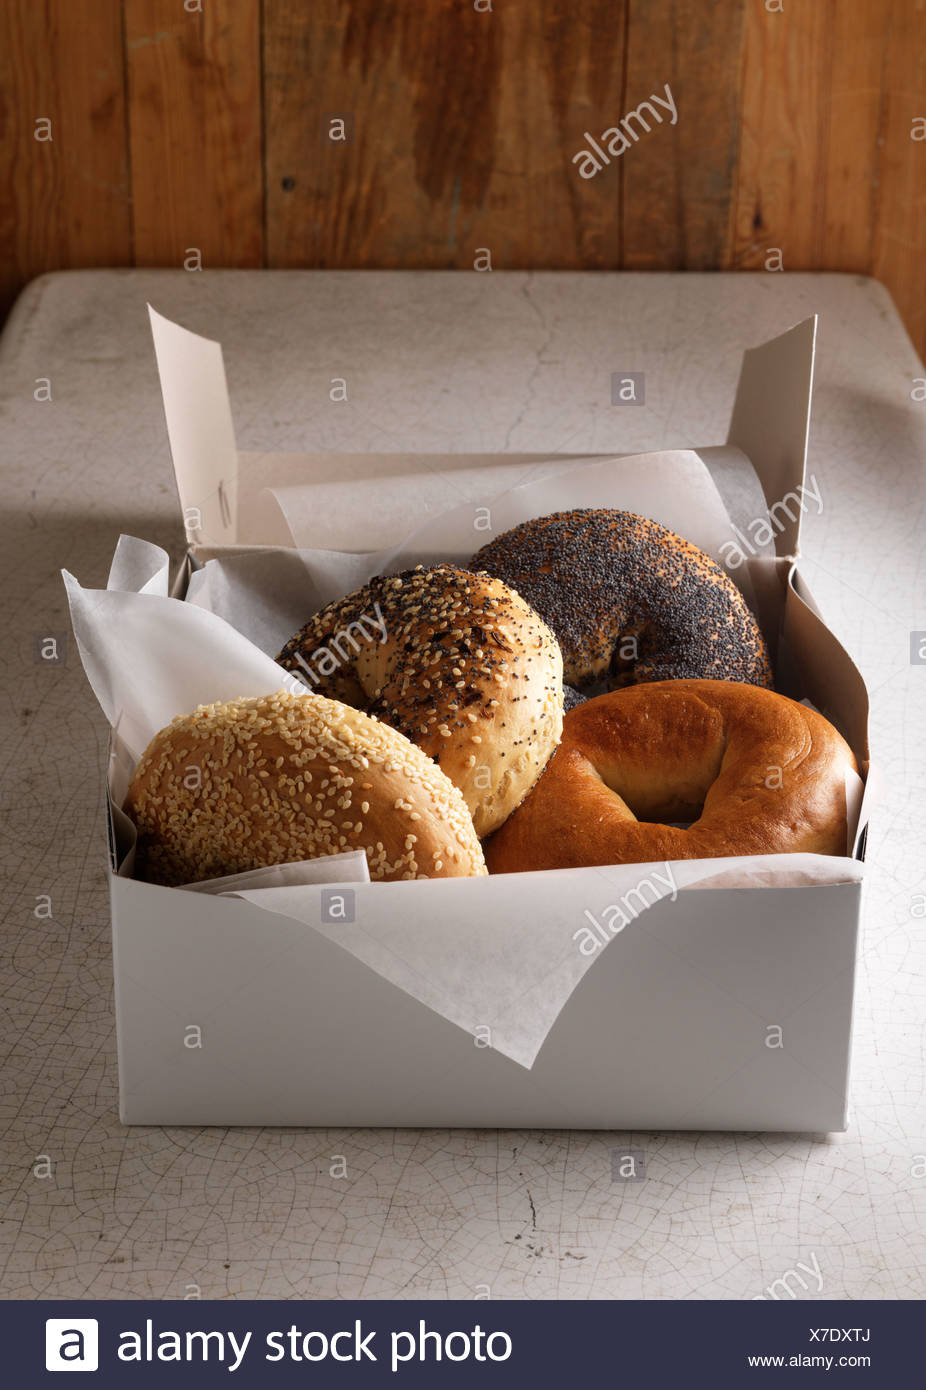 Box of various bagels - Stock Image